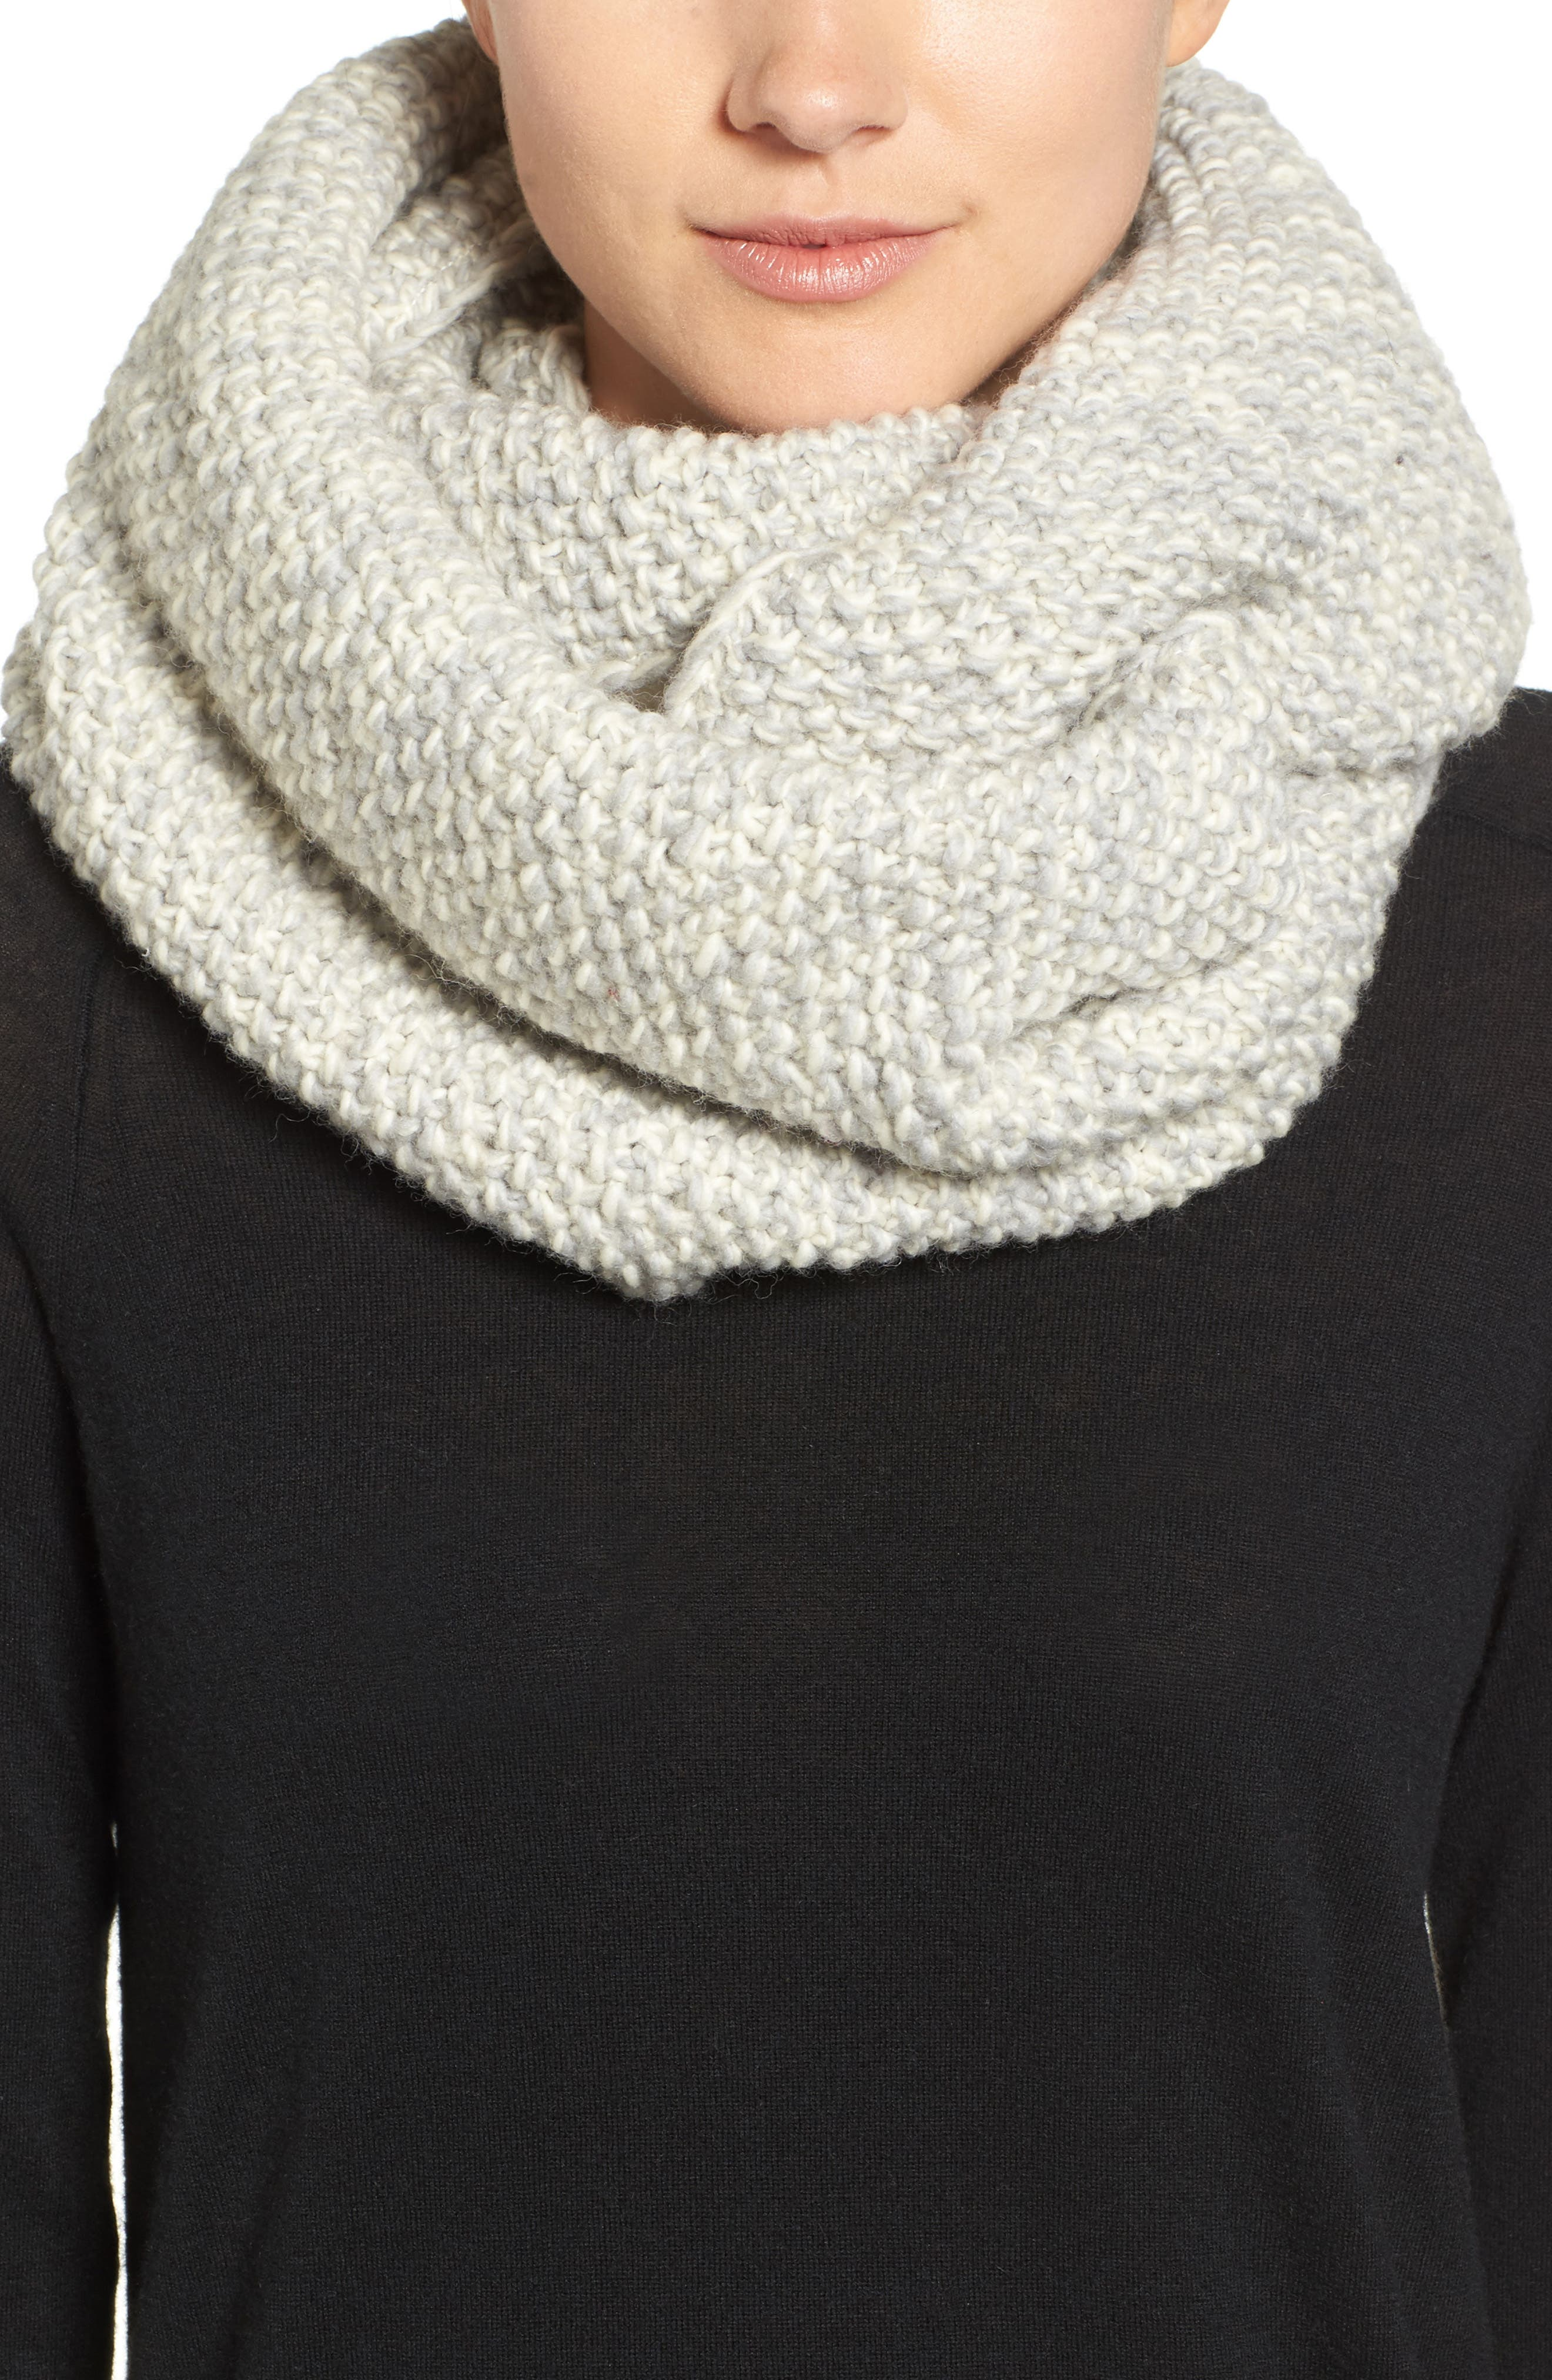 Knit Wool Infinity Scarf,                             Main thumbnail 2, color,